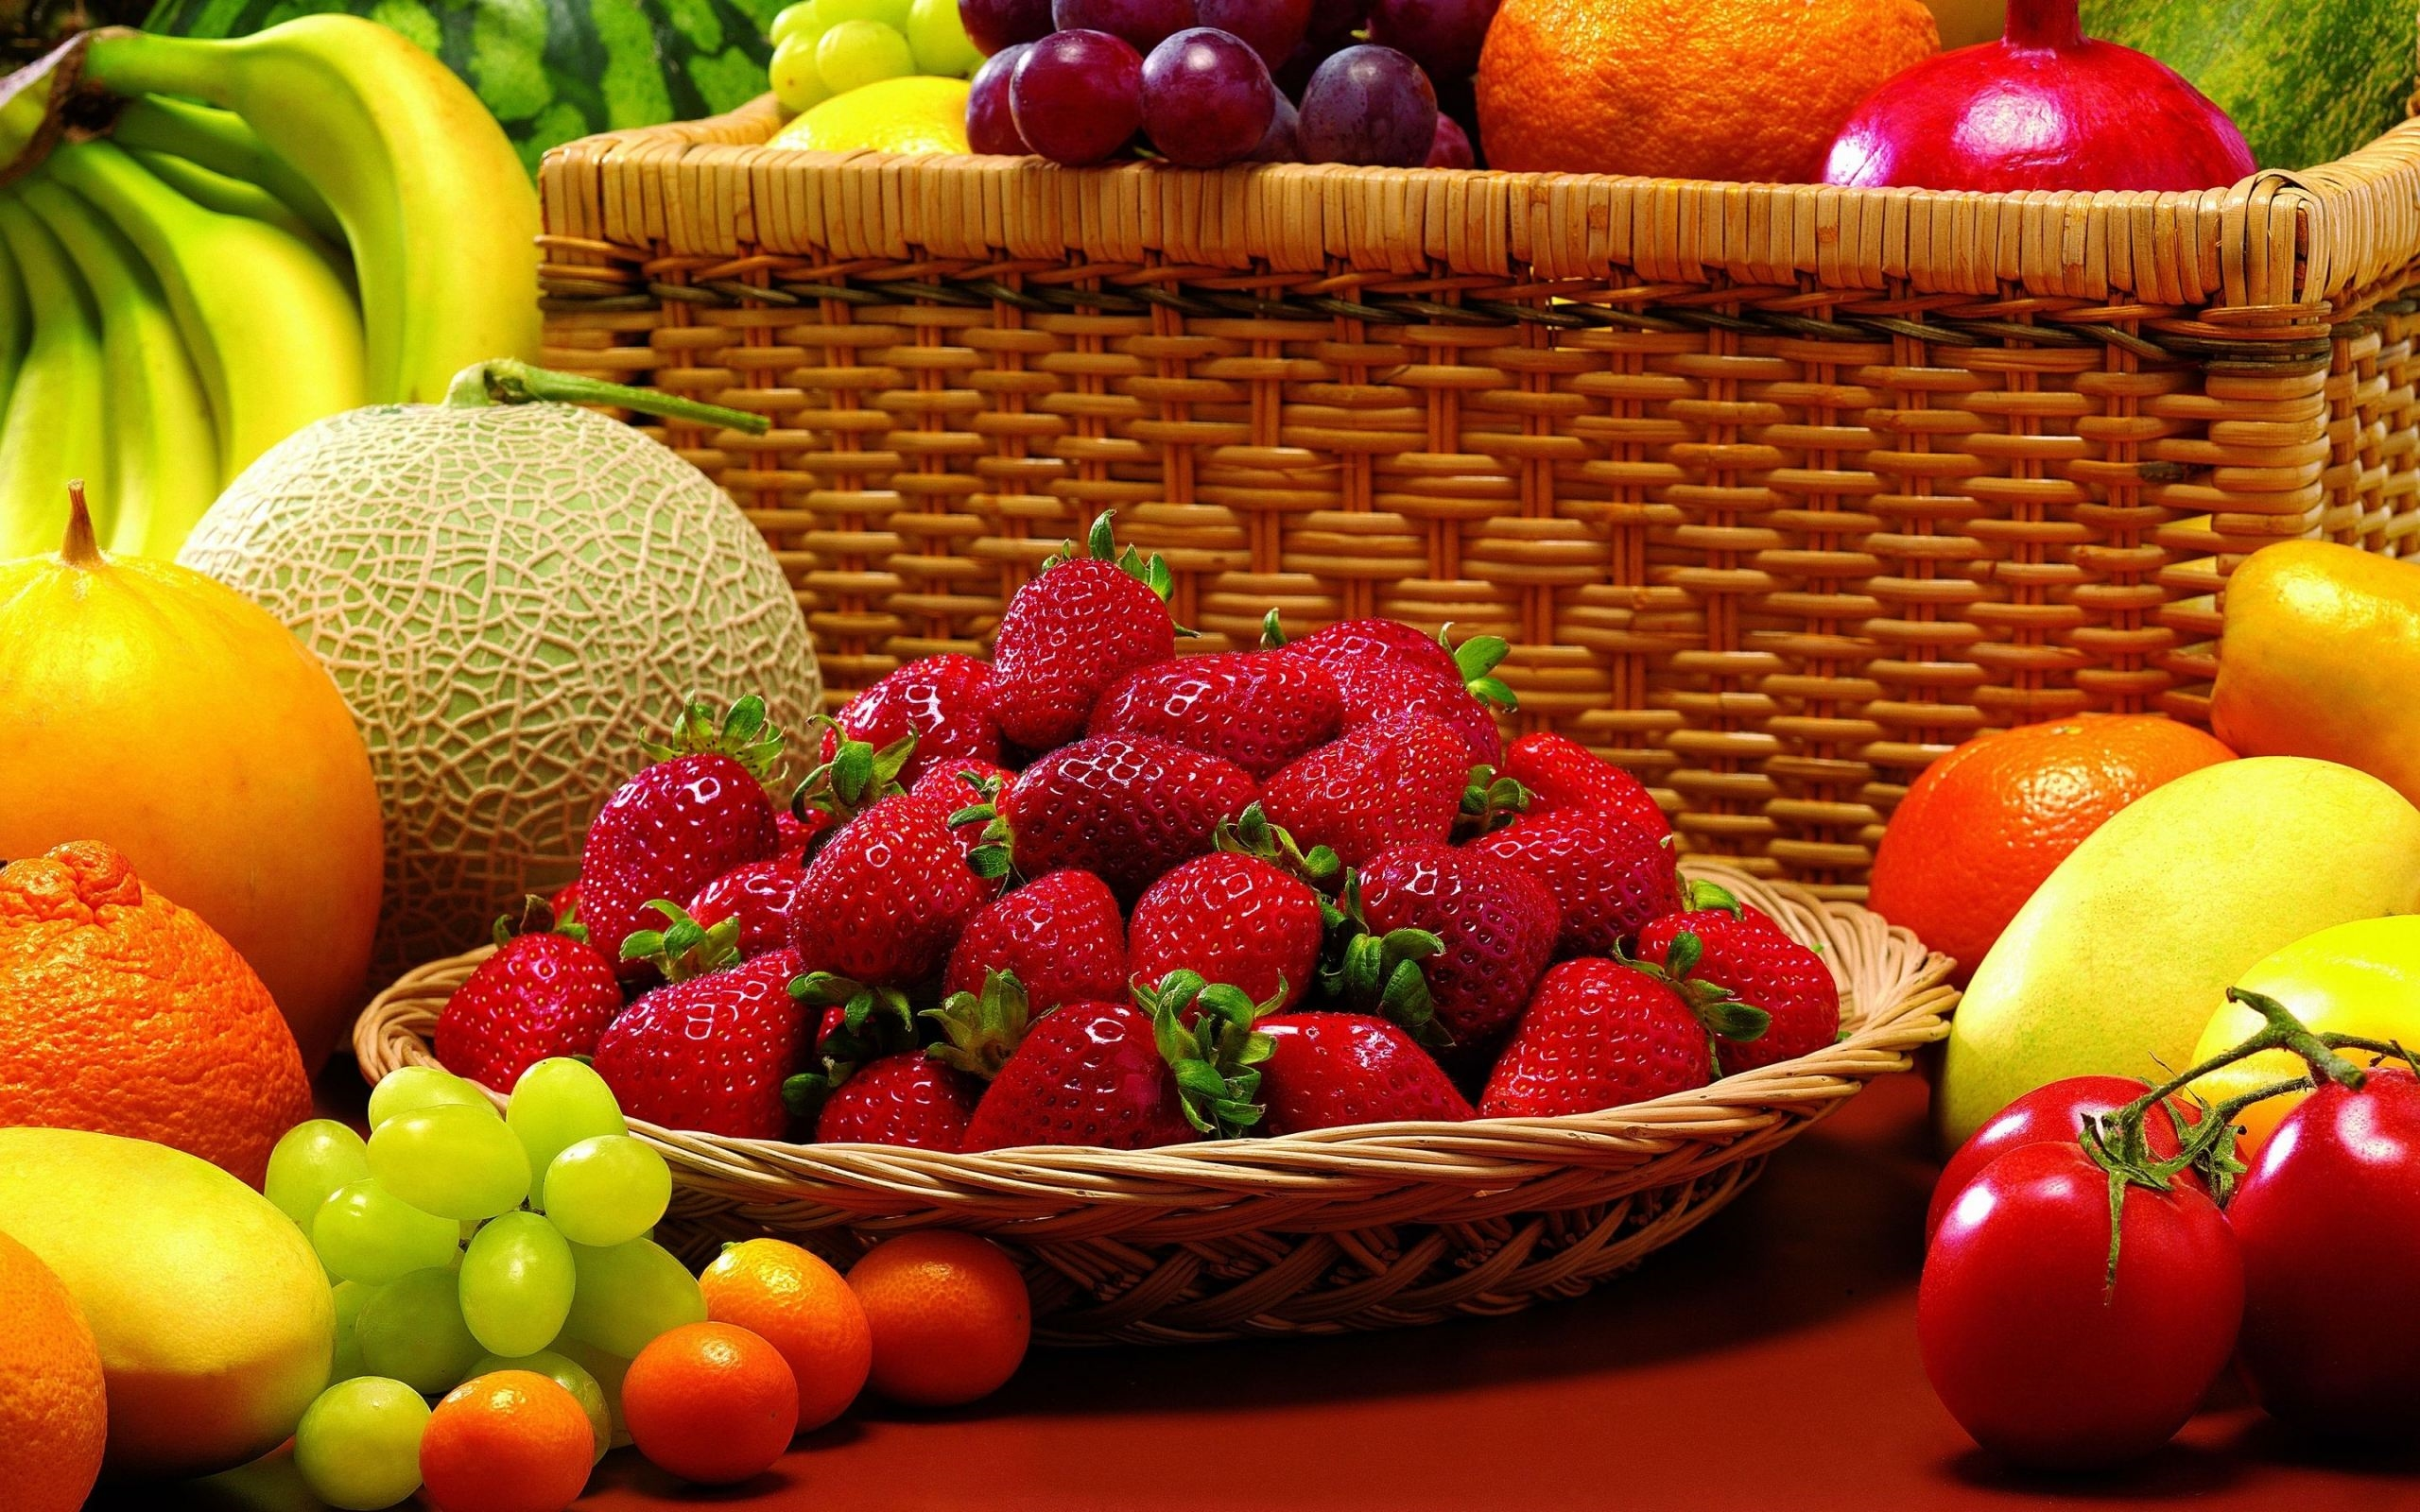 Fruits hd images - Fresh Fruits Background